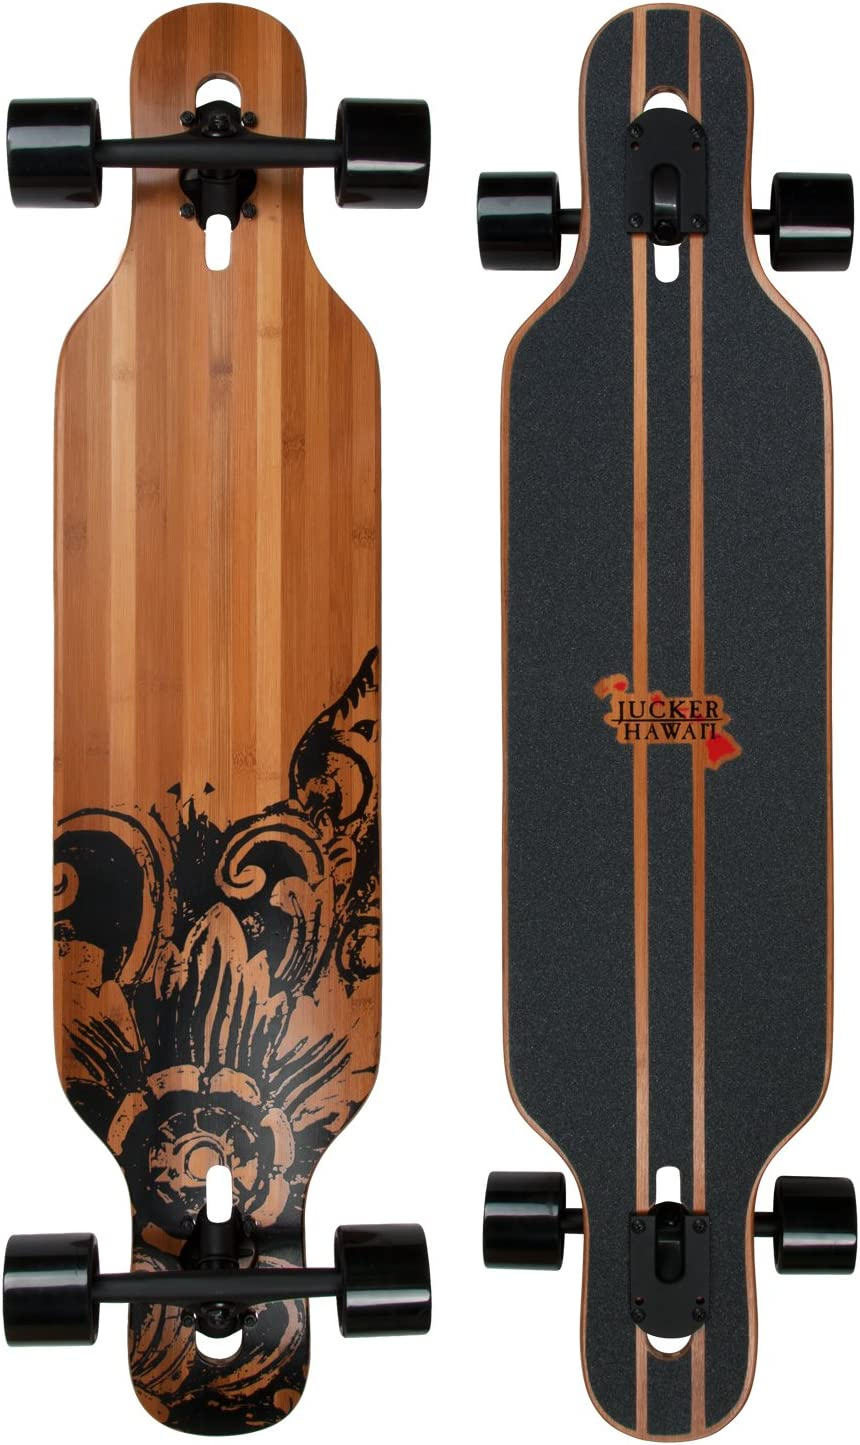 Longboard Skateboard Drop Through Complete in 3 Flex levels - JUCKER HAWAII NEW HOKU - Freeride, Cruiser, Slide Longboard / UK